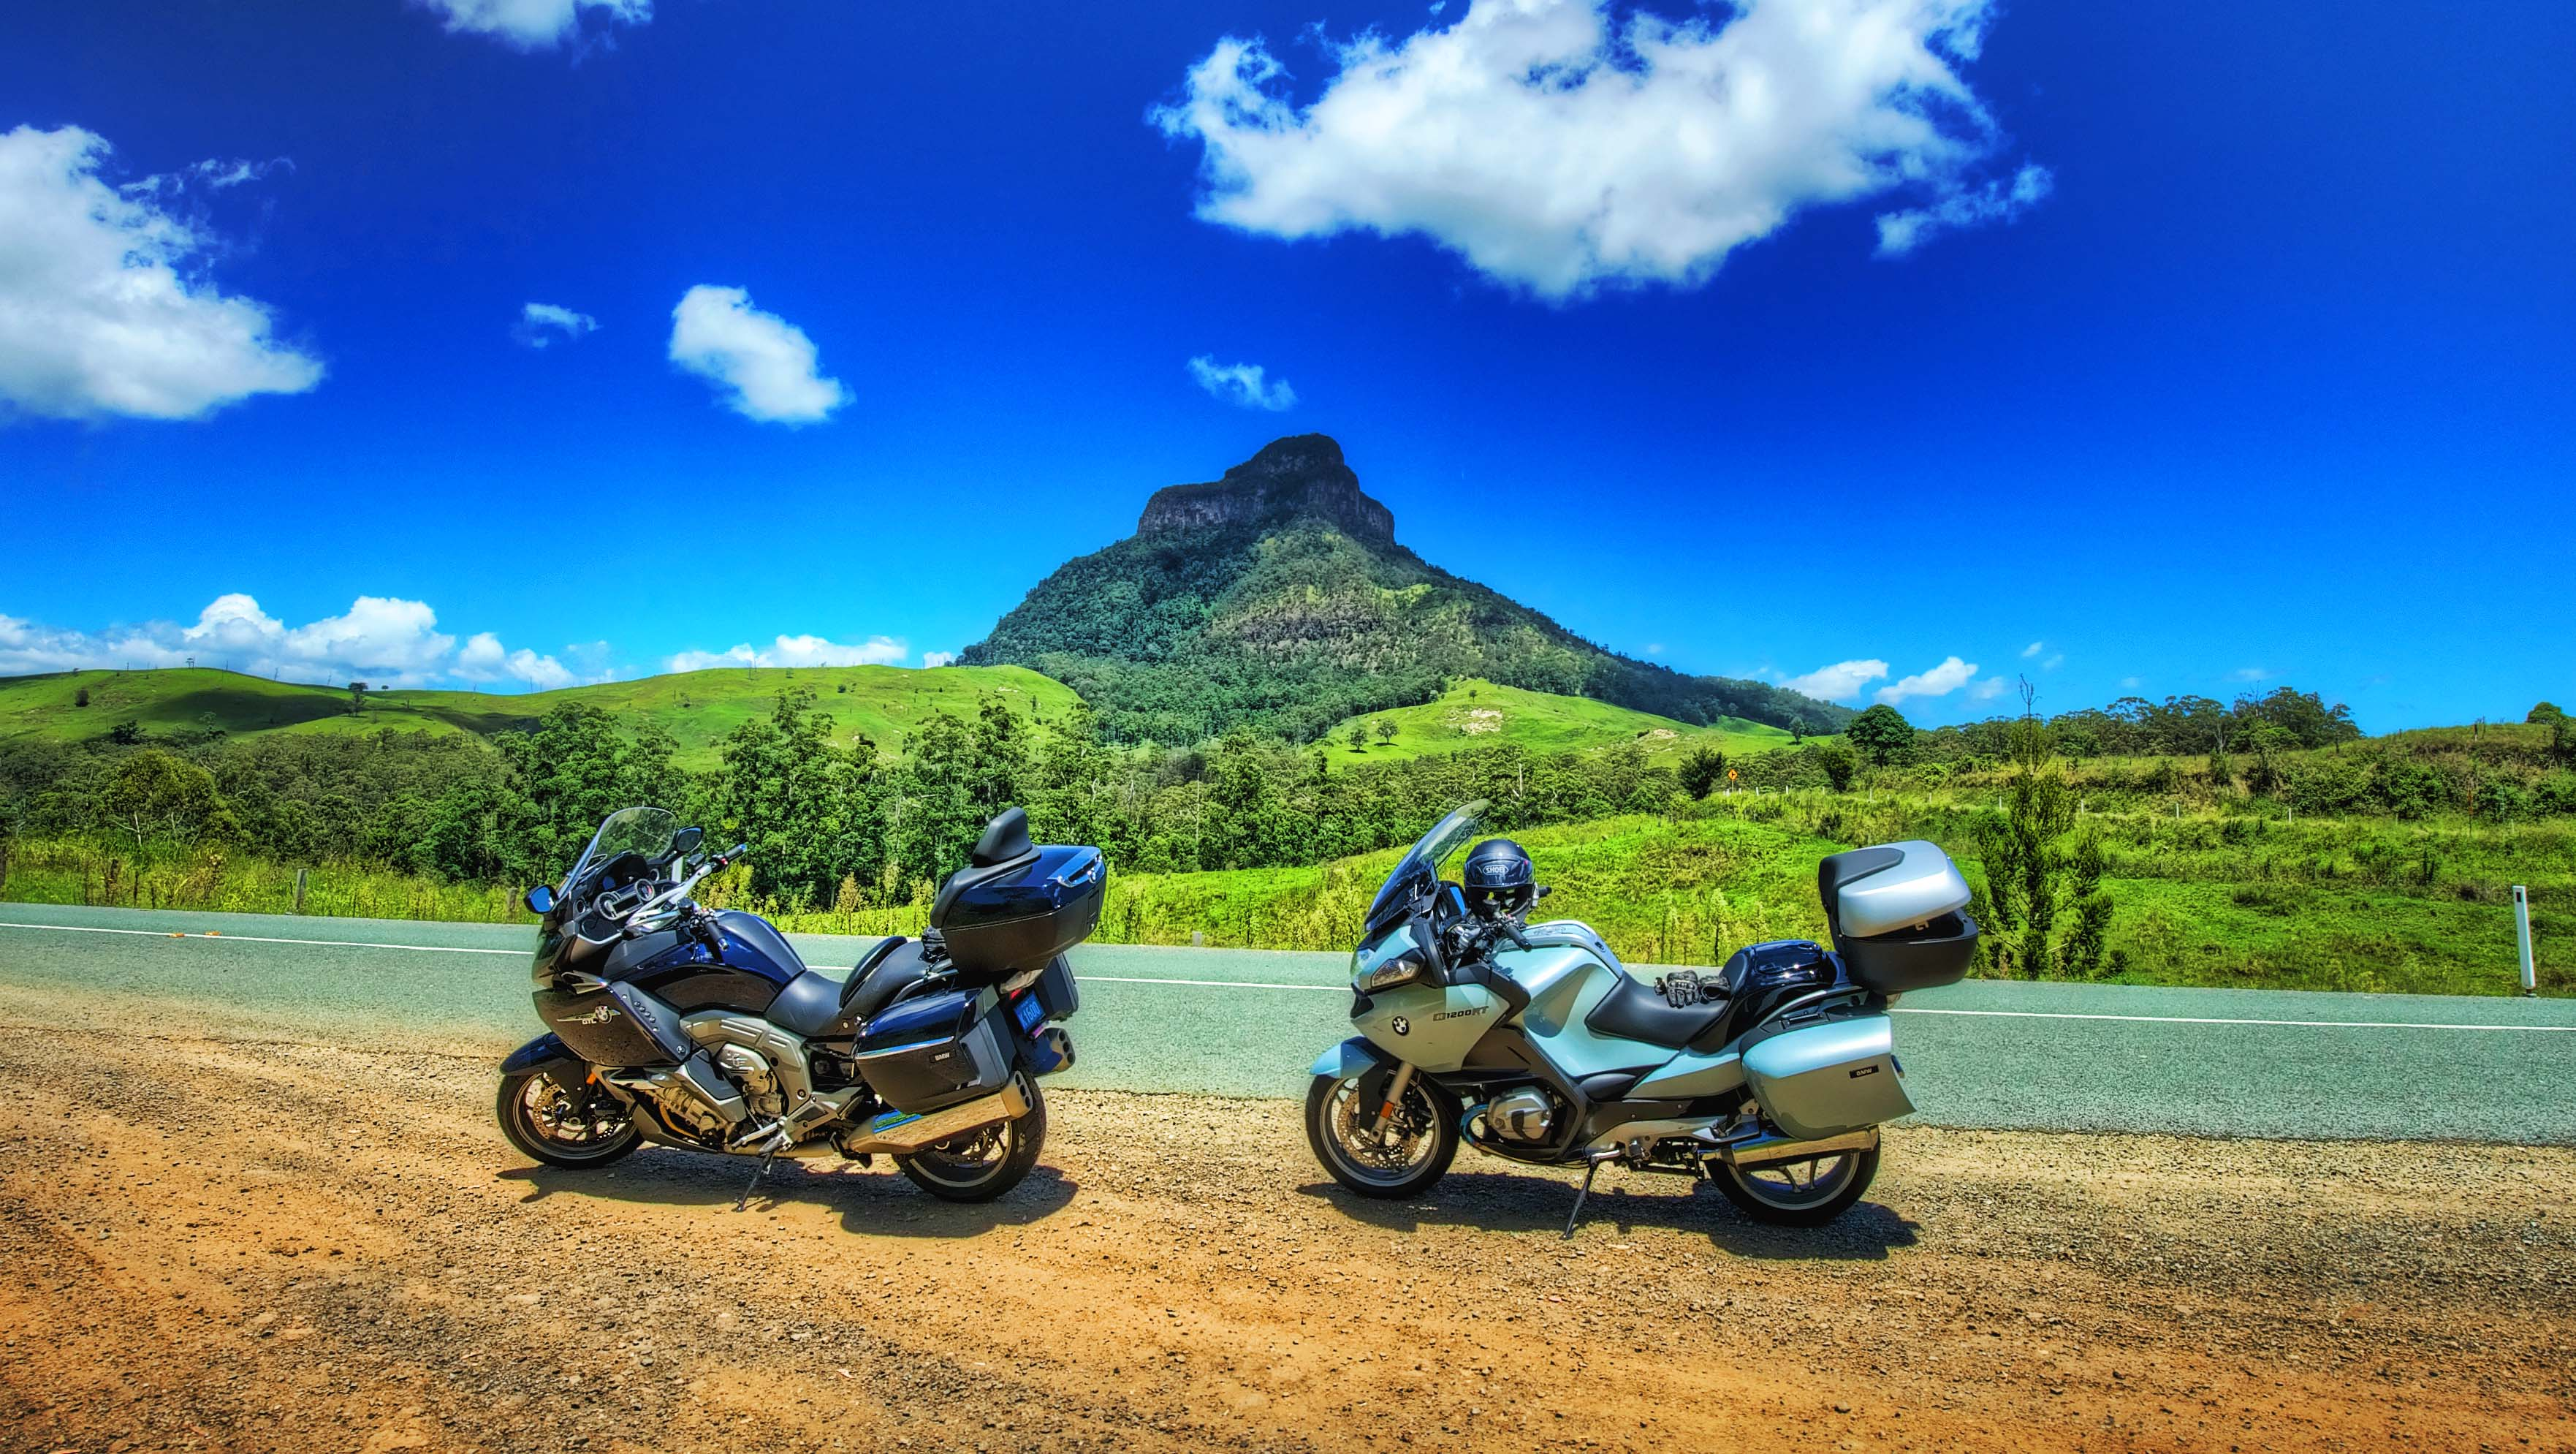 Countryside Photography_2 bikes and a mountain